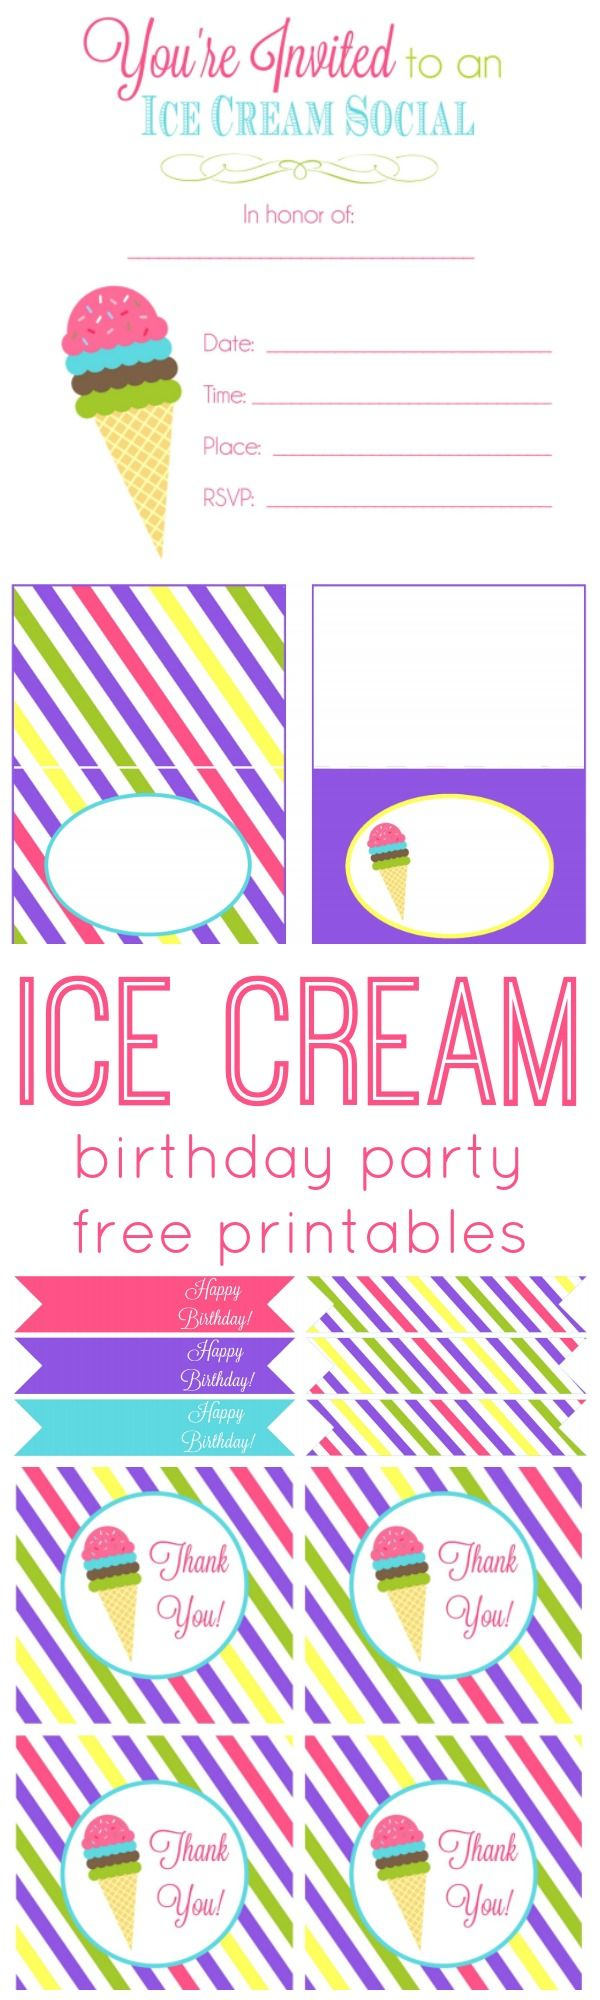 Ice Cream Birthday Party Free Printables + Party Ideas